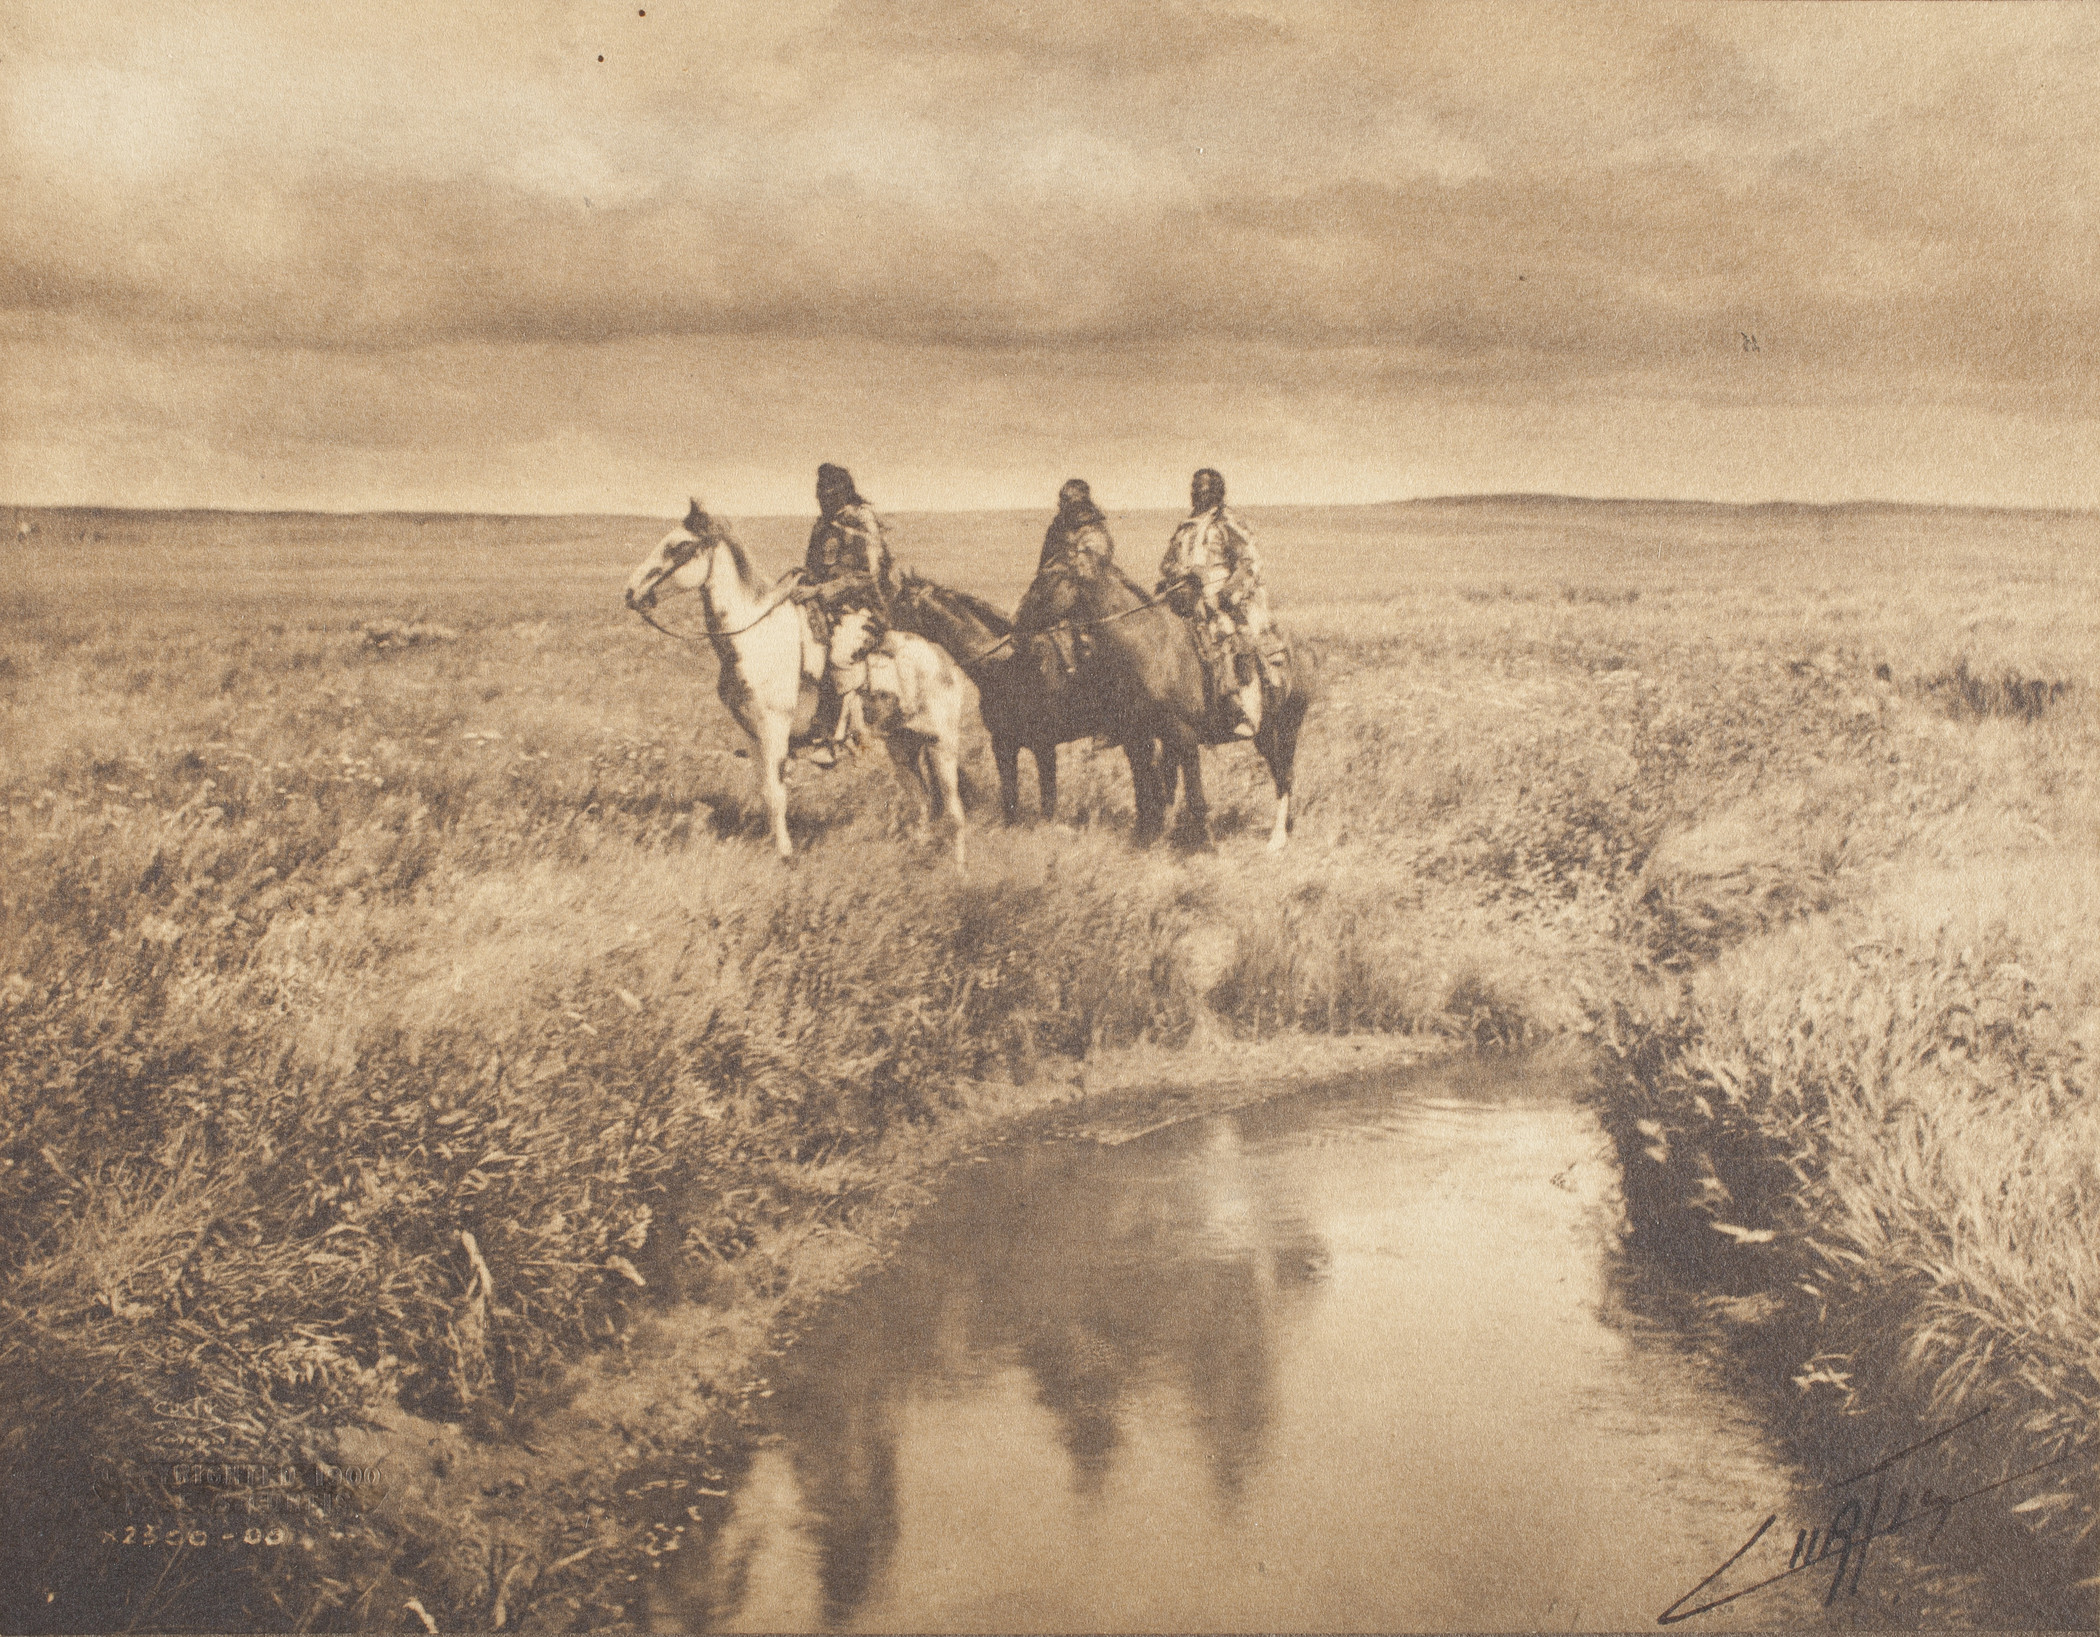 Edward Sheriff Curtis, The Three Chiefs - Piegan, 1900, Los Angeles County Museum of Art, The Marjorie and Leonard Vernon Collection, gift of The Annenberg Foundation, acquired from Carol Vernon and Robert Turbin, digital image © Museum Associates/LACMA